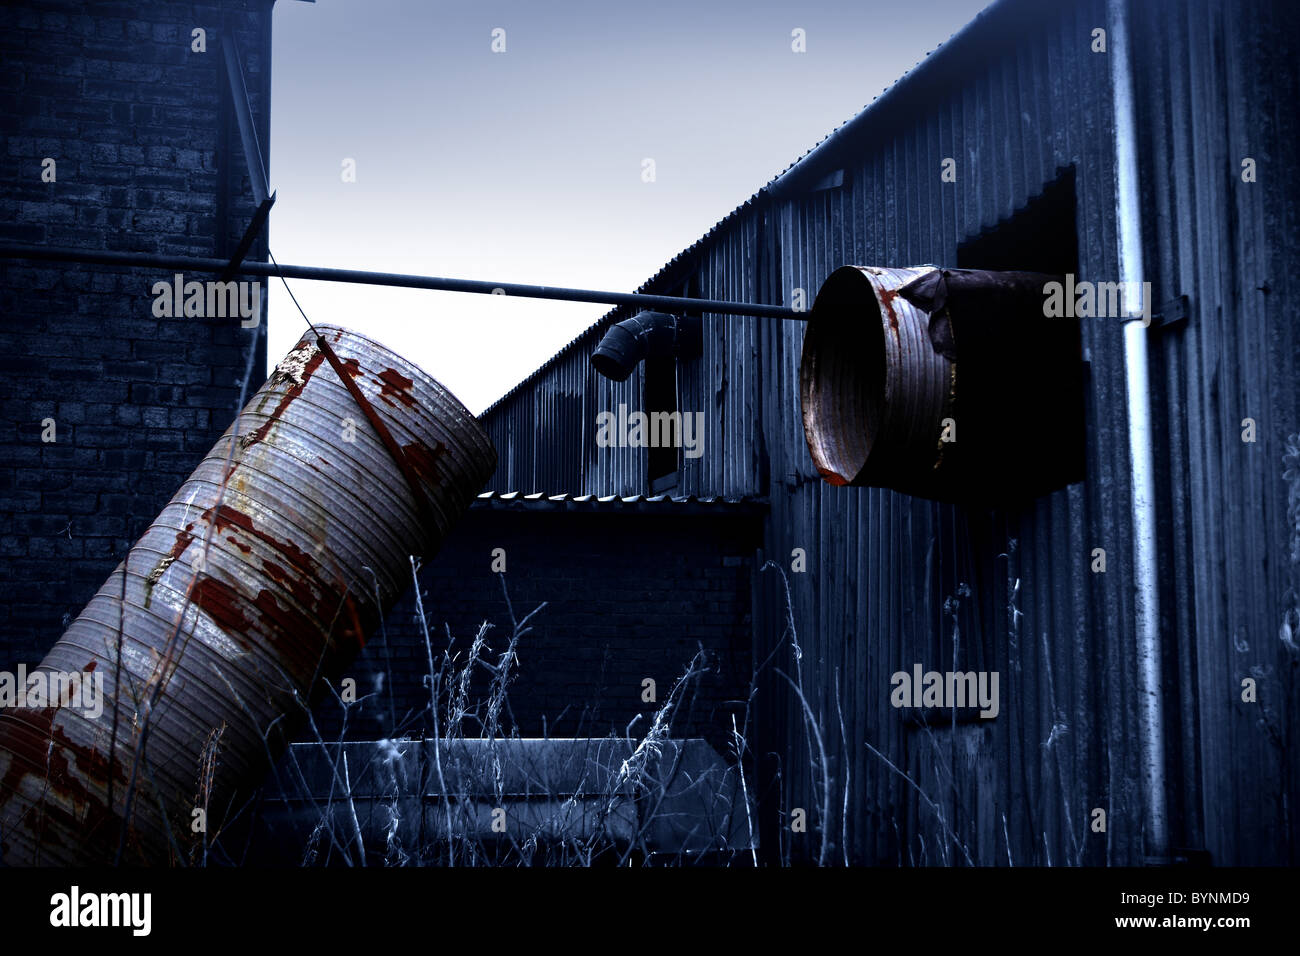 Derelict factory with metal sheeting - Stock Image